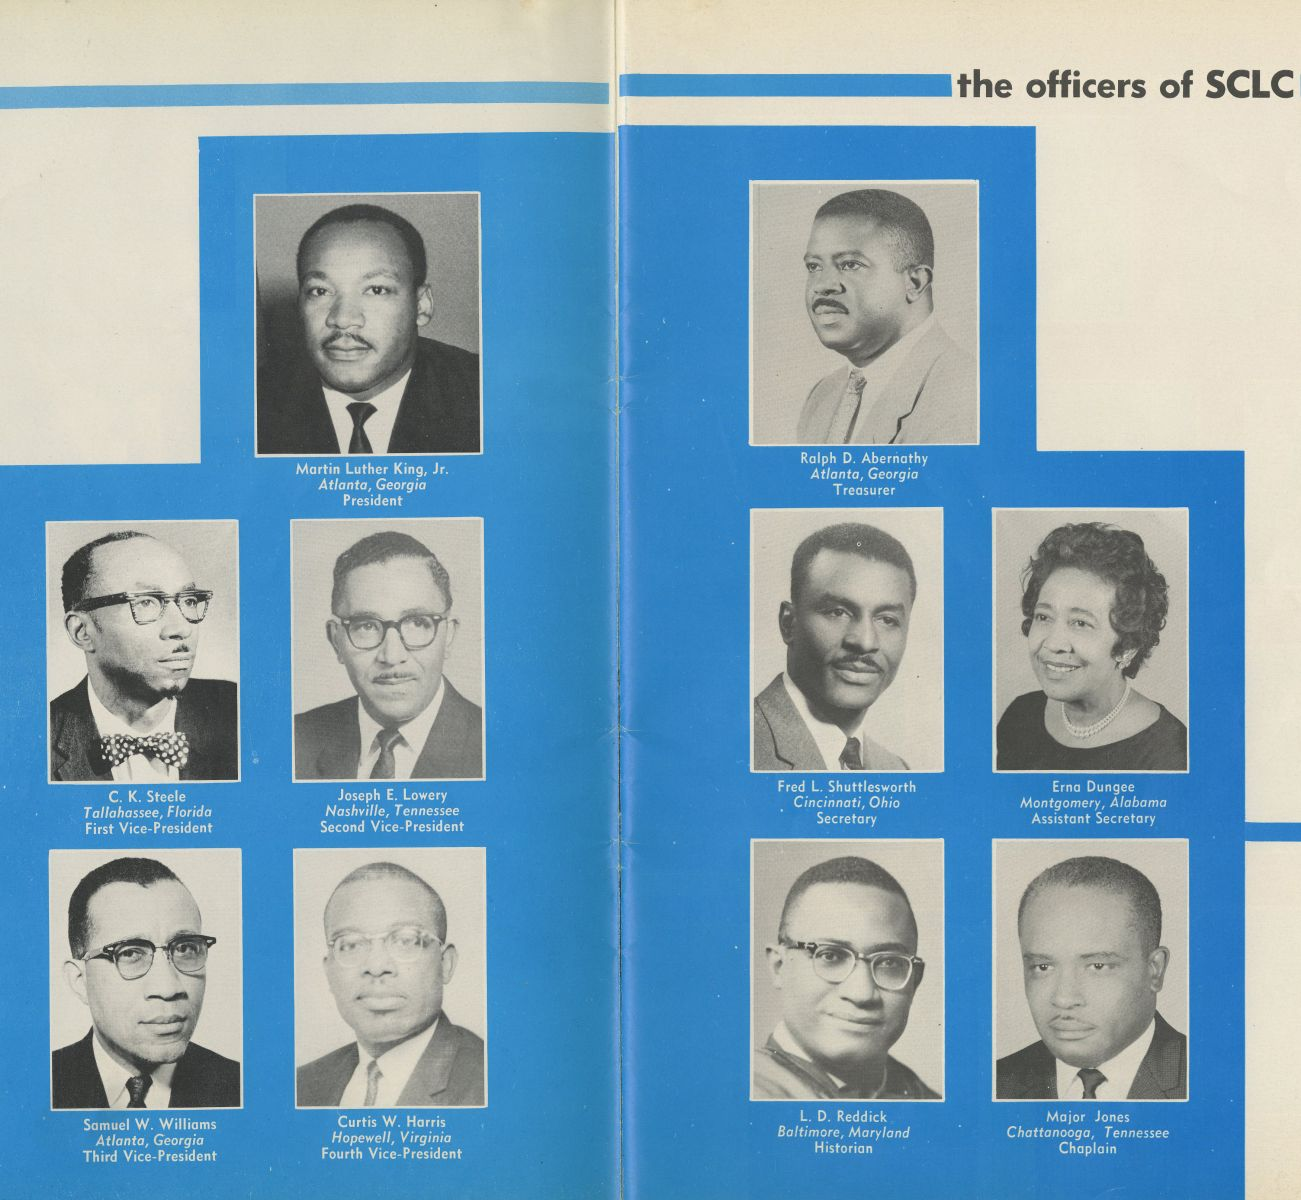 Officers of the SCLC